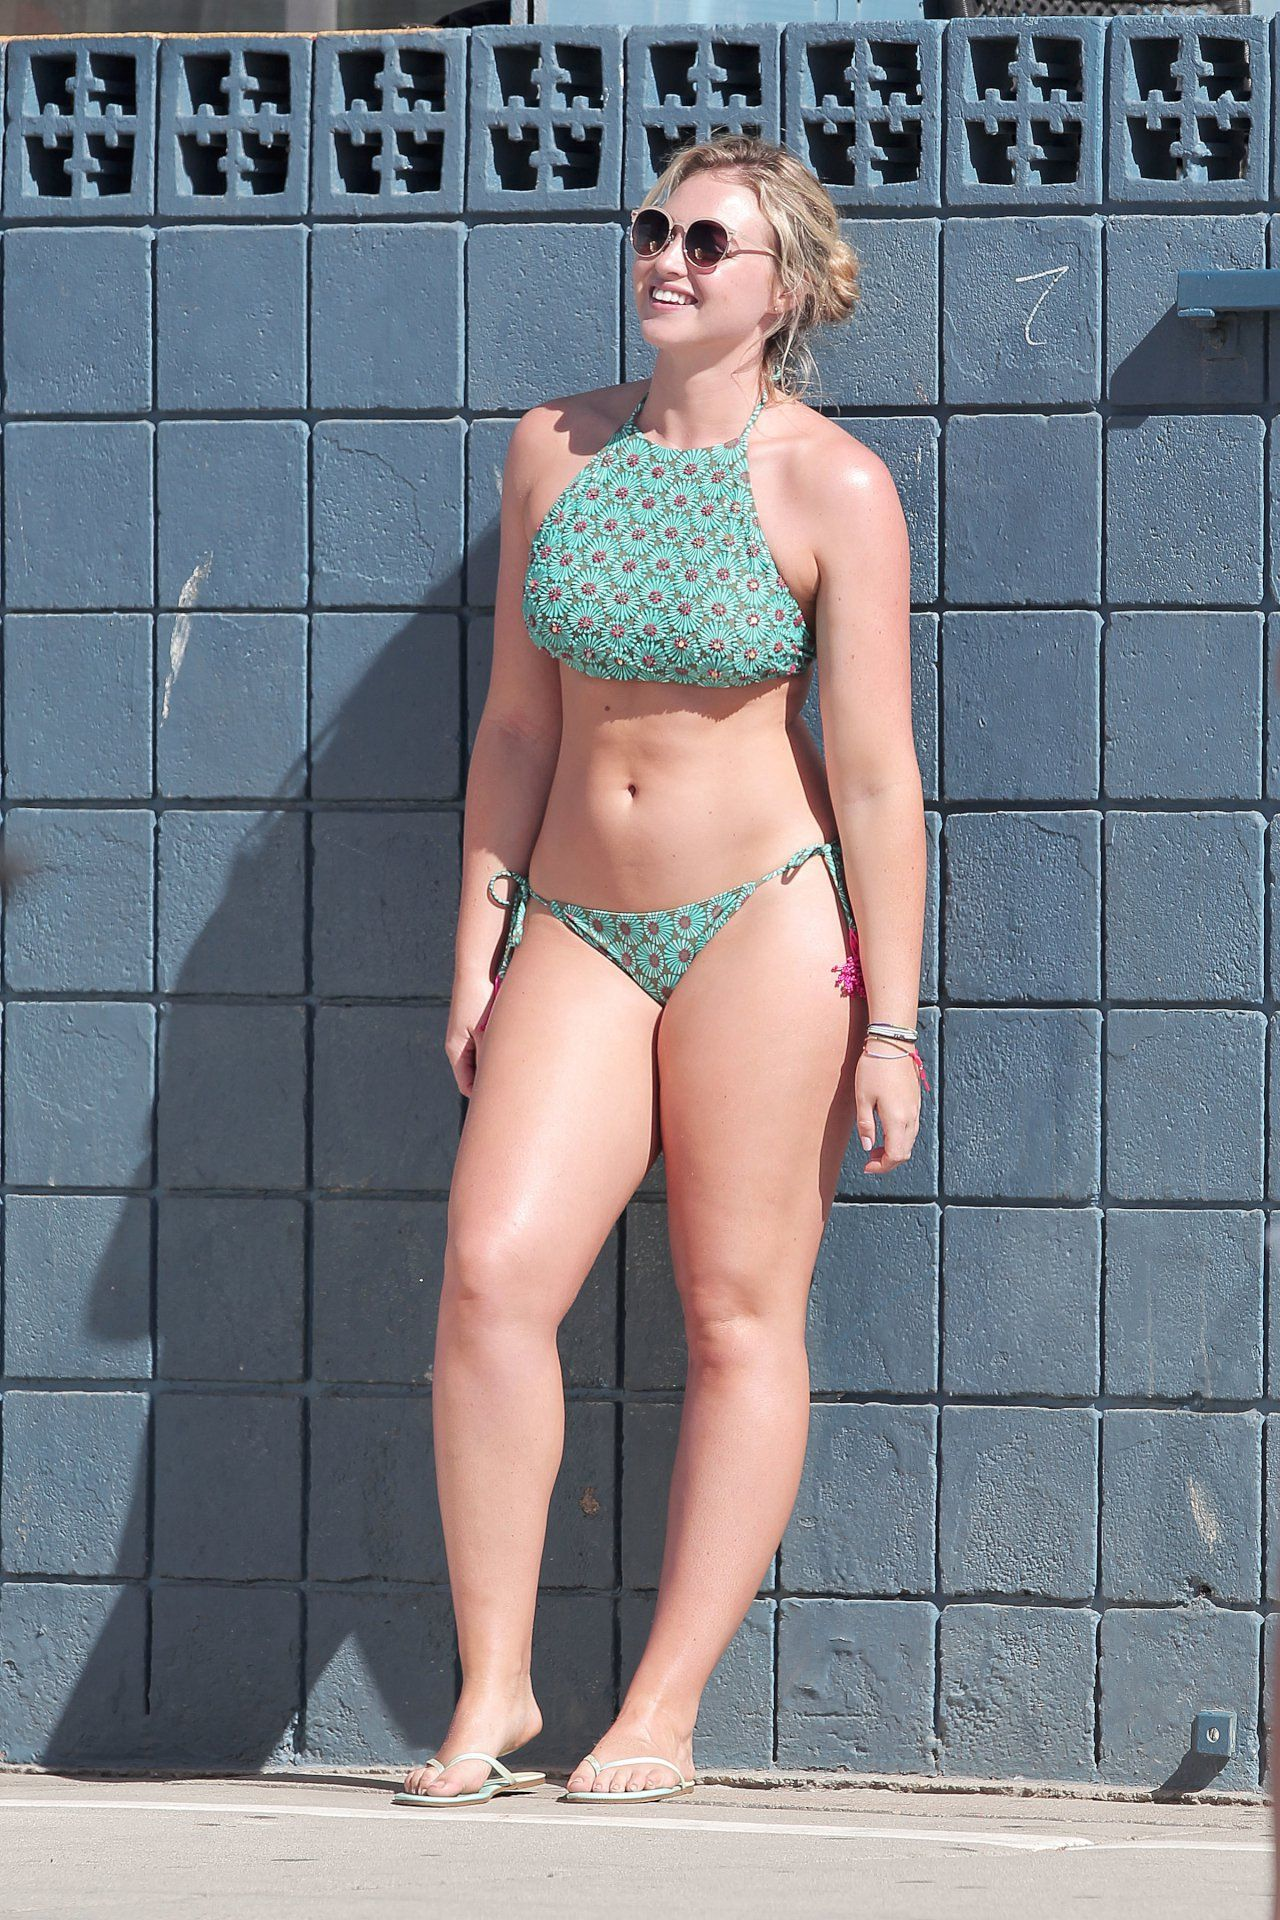 shot Bikini beach candids self